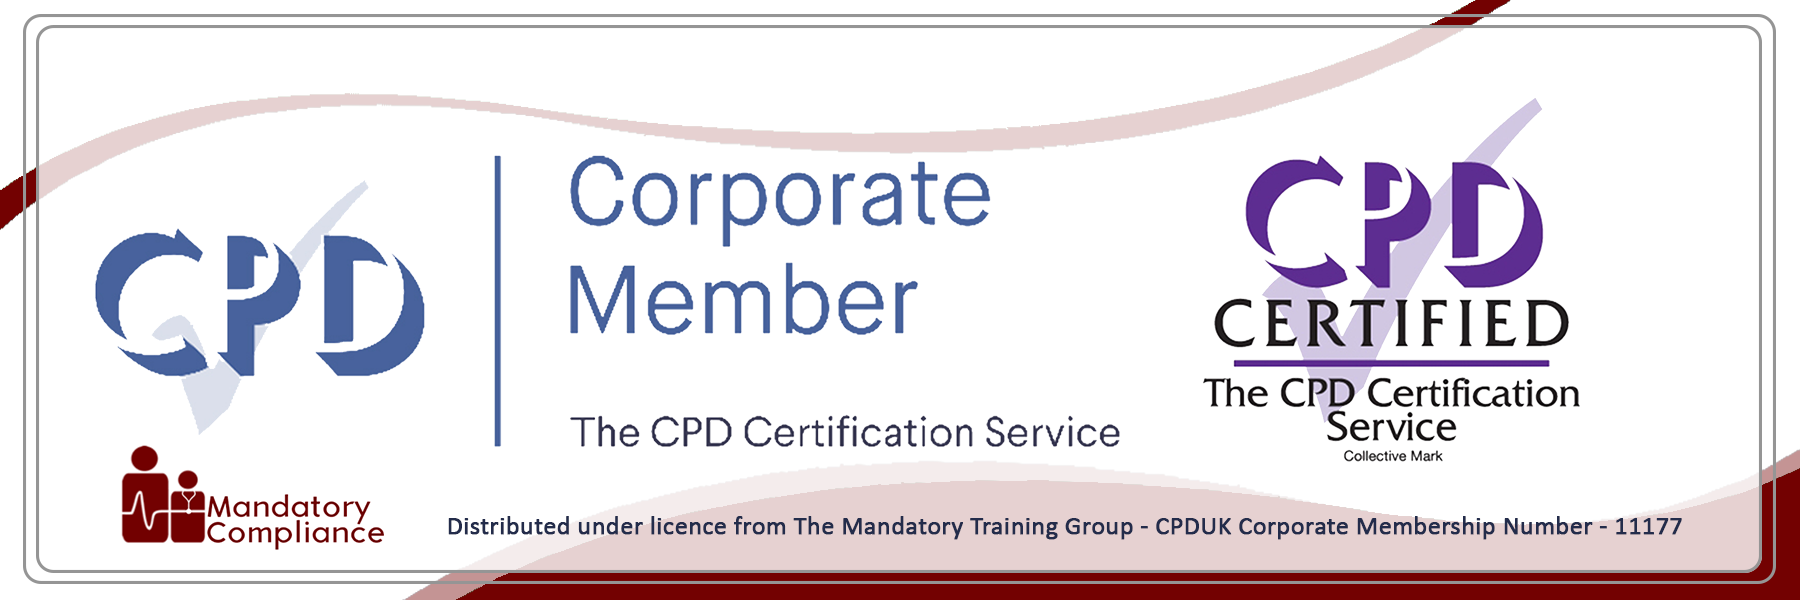 Mental Capacity Act 2005 - Online Training Course - CPD Accredited - Mandatory Compliance UK -